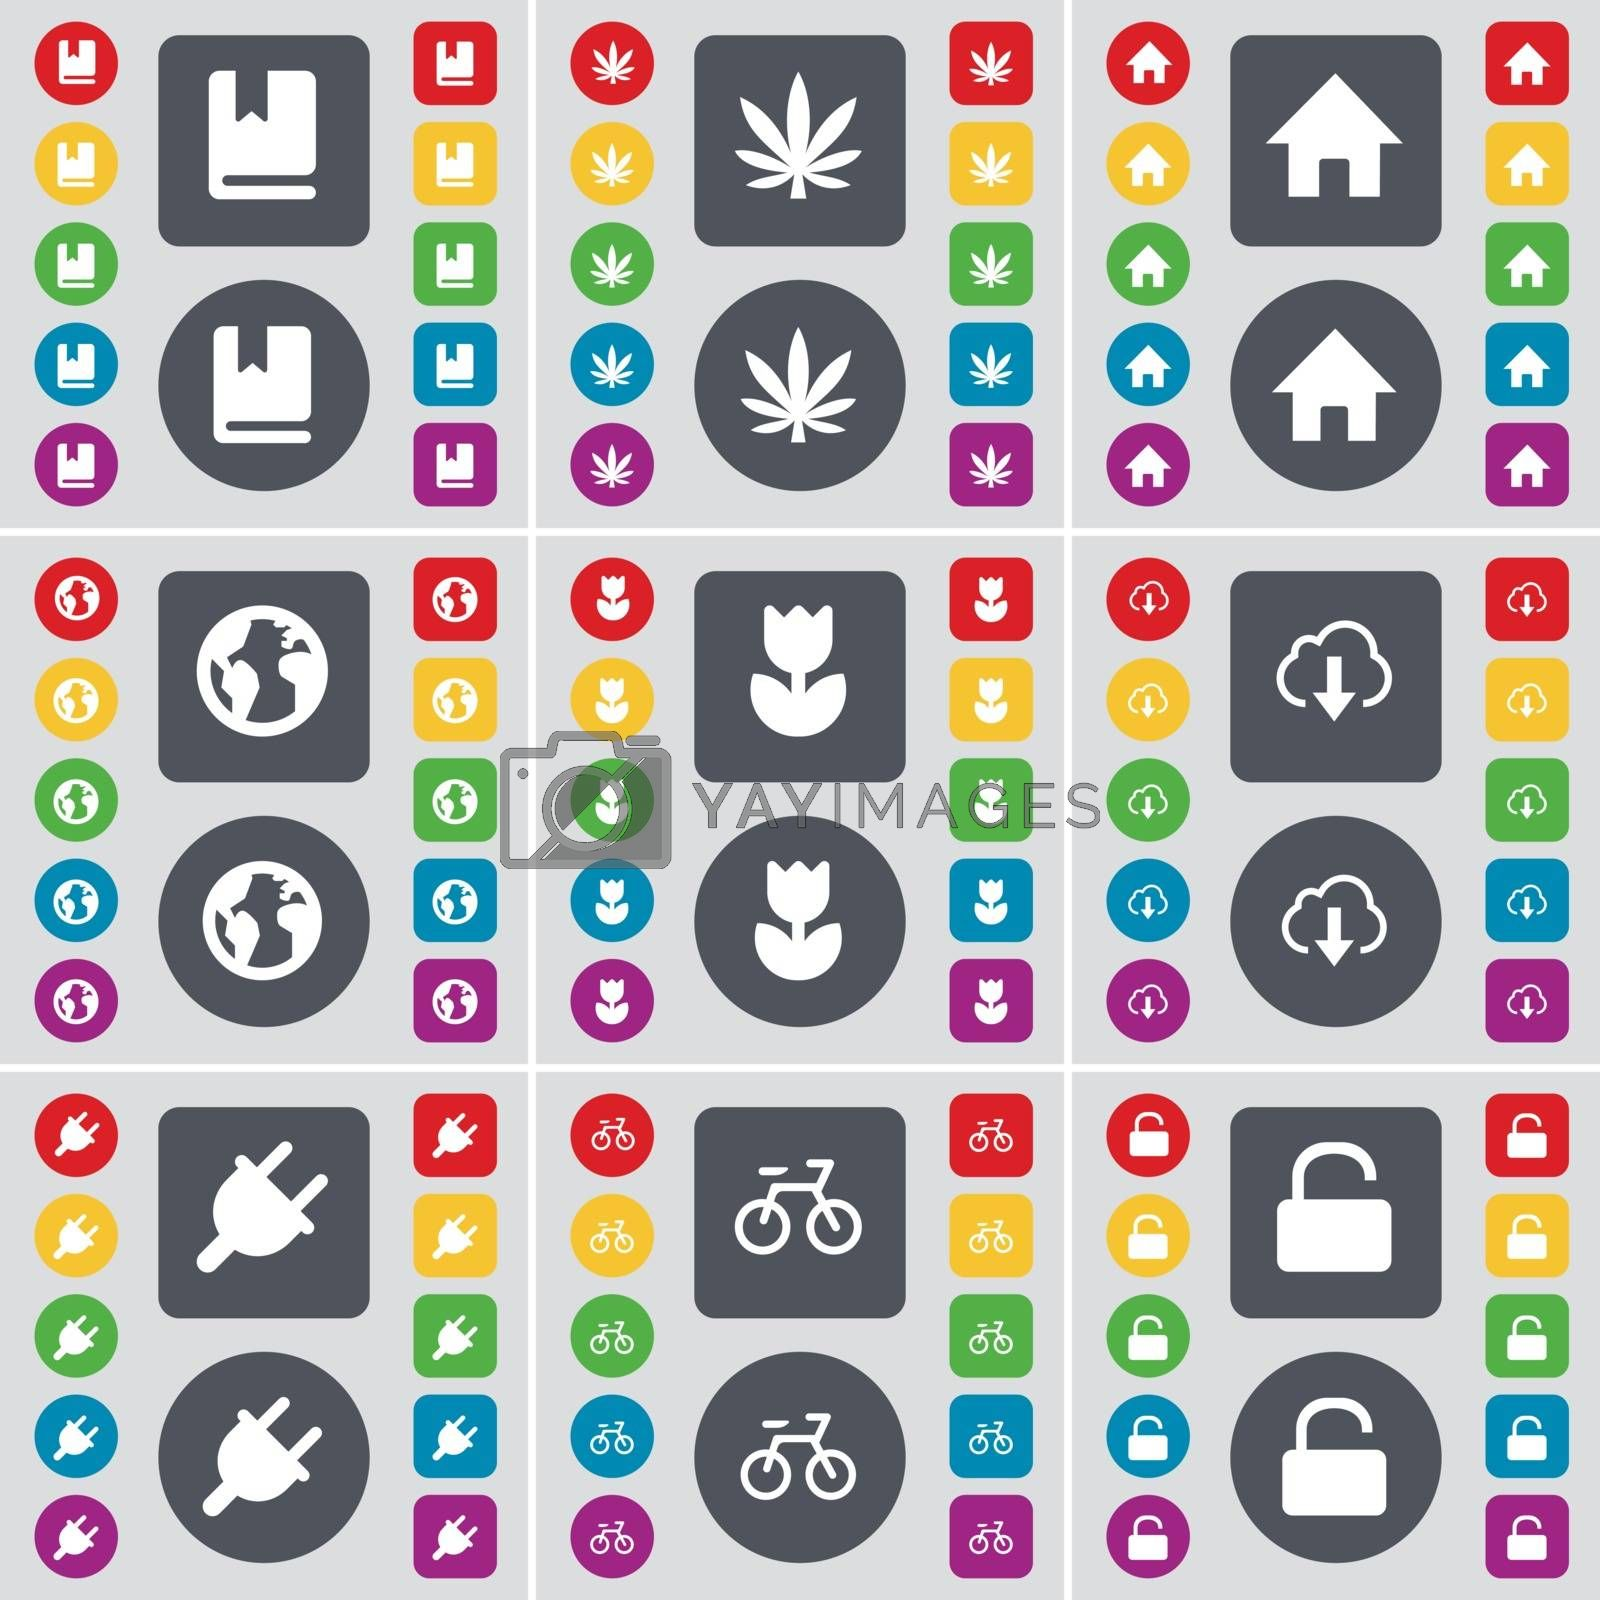 Royalty free image of Dictionary, Marijuana, House, Earth, Folder, Cloud, Socket, Bicycle, Lock icon symbol. A large set of flat, colored buttons for your design. Vector by serhii_lohvyniuk